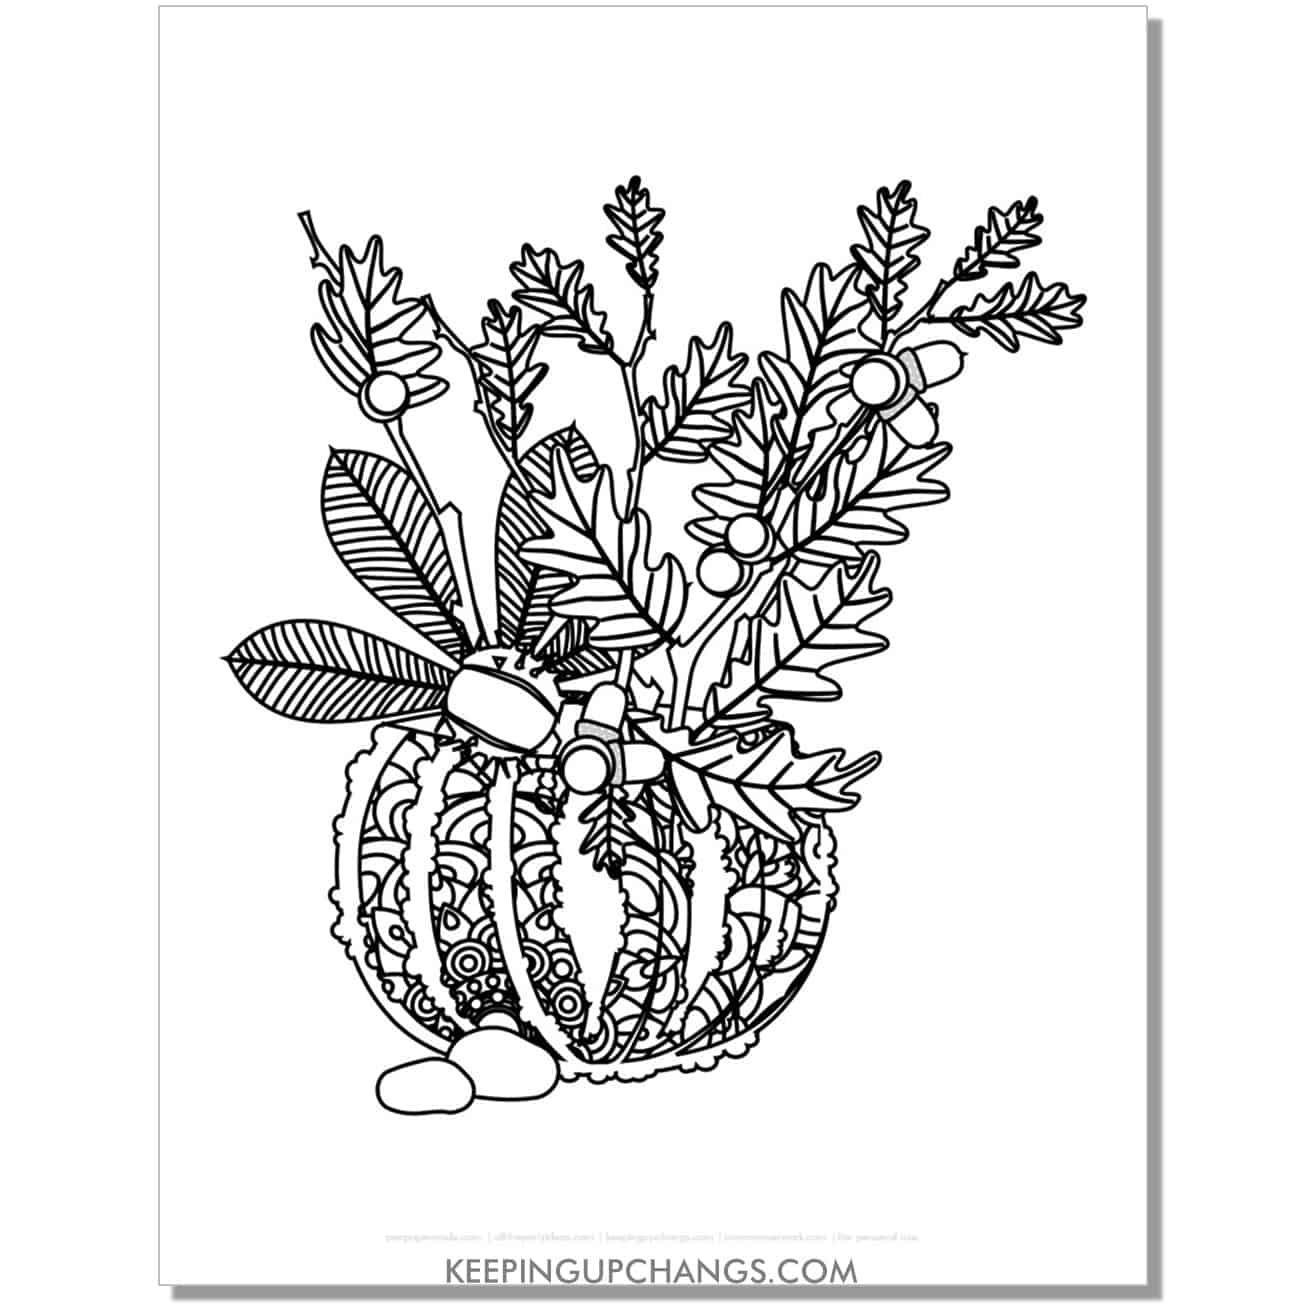 free zentangle thanksgiving pumpkin coloring page for adults with acorns, foliage.